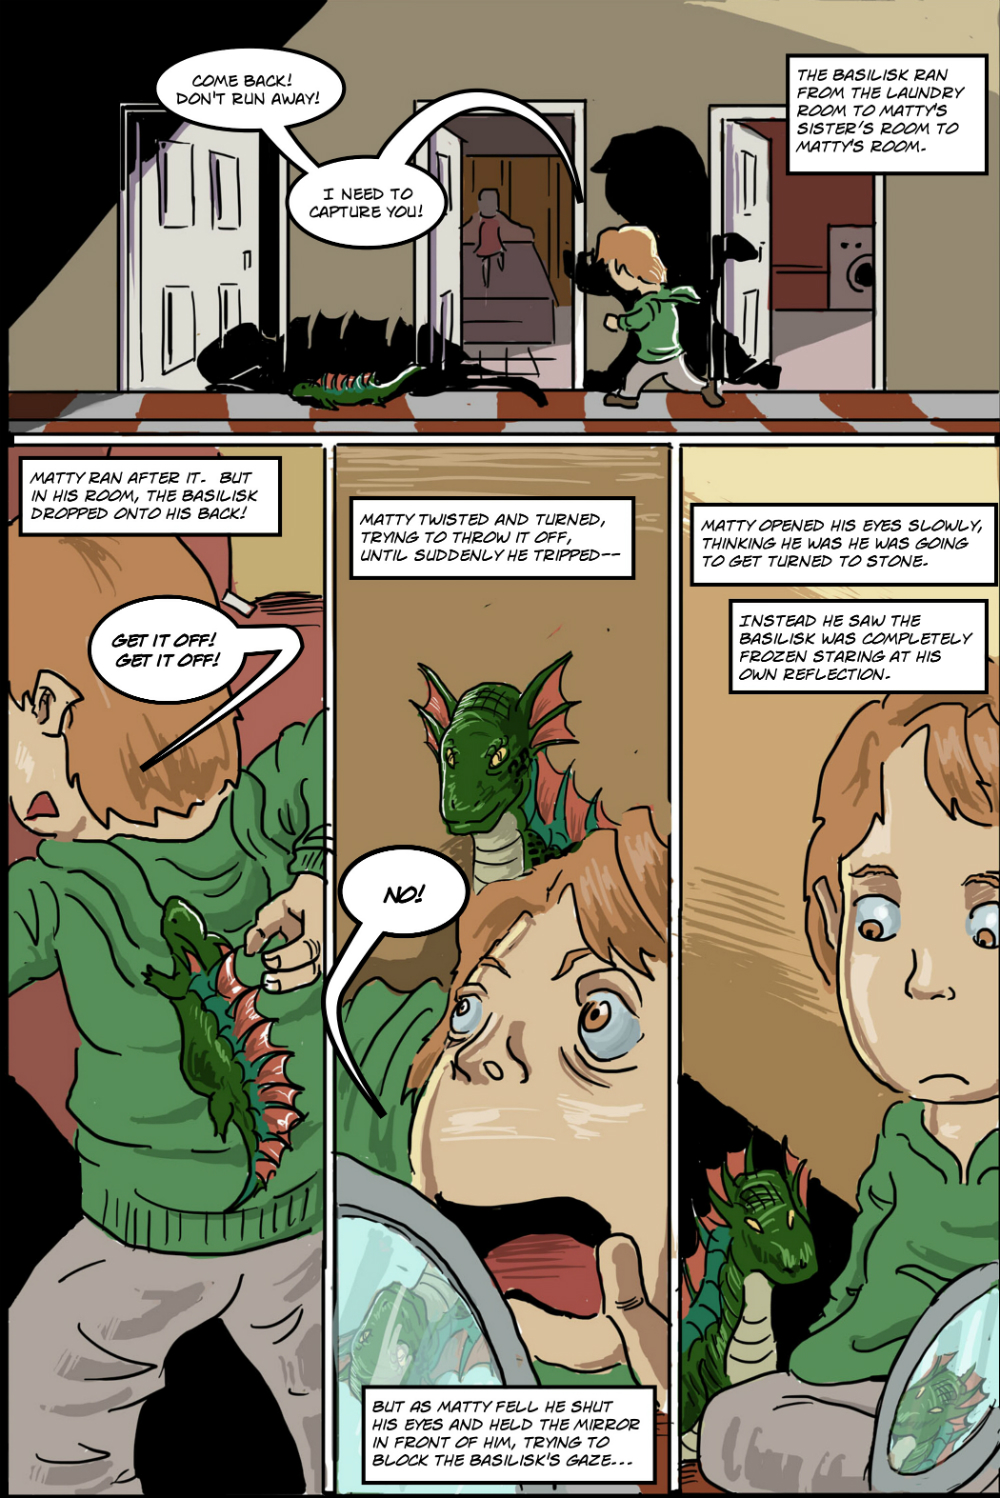 BASILISK IN THE HOUSE page 10 - story 18 in The Book of Lies